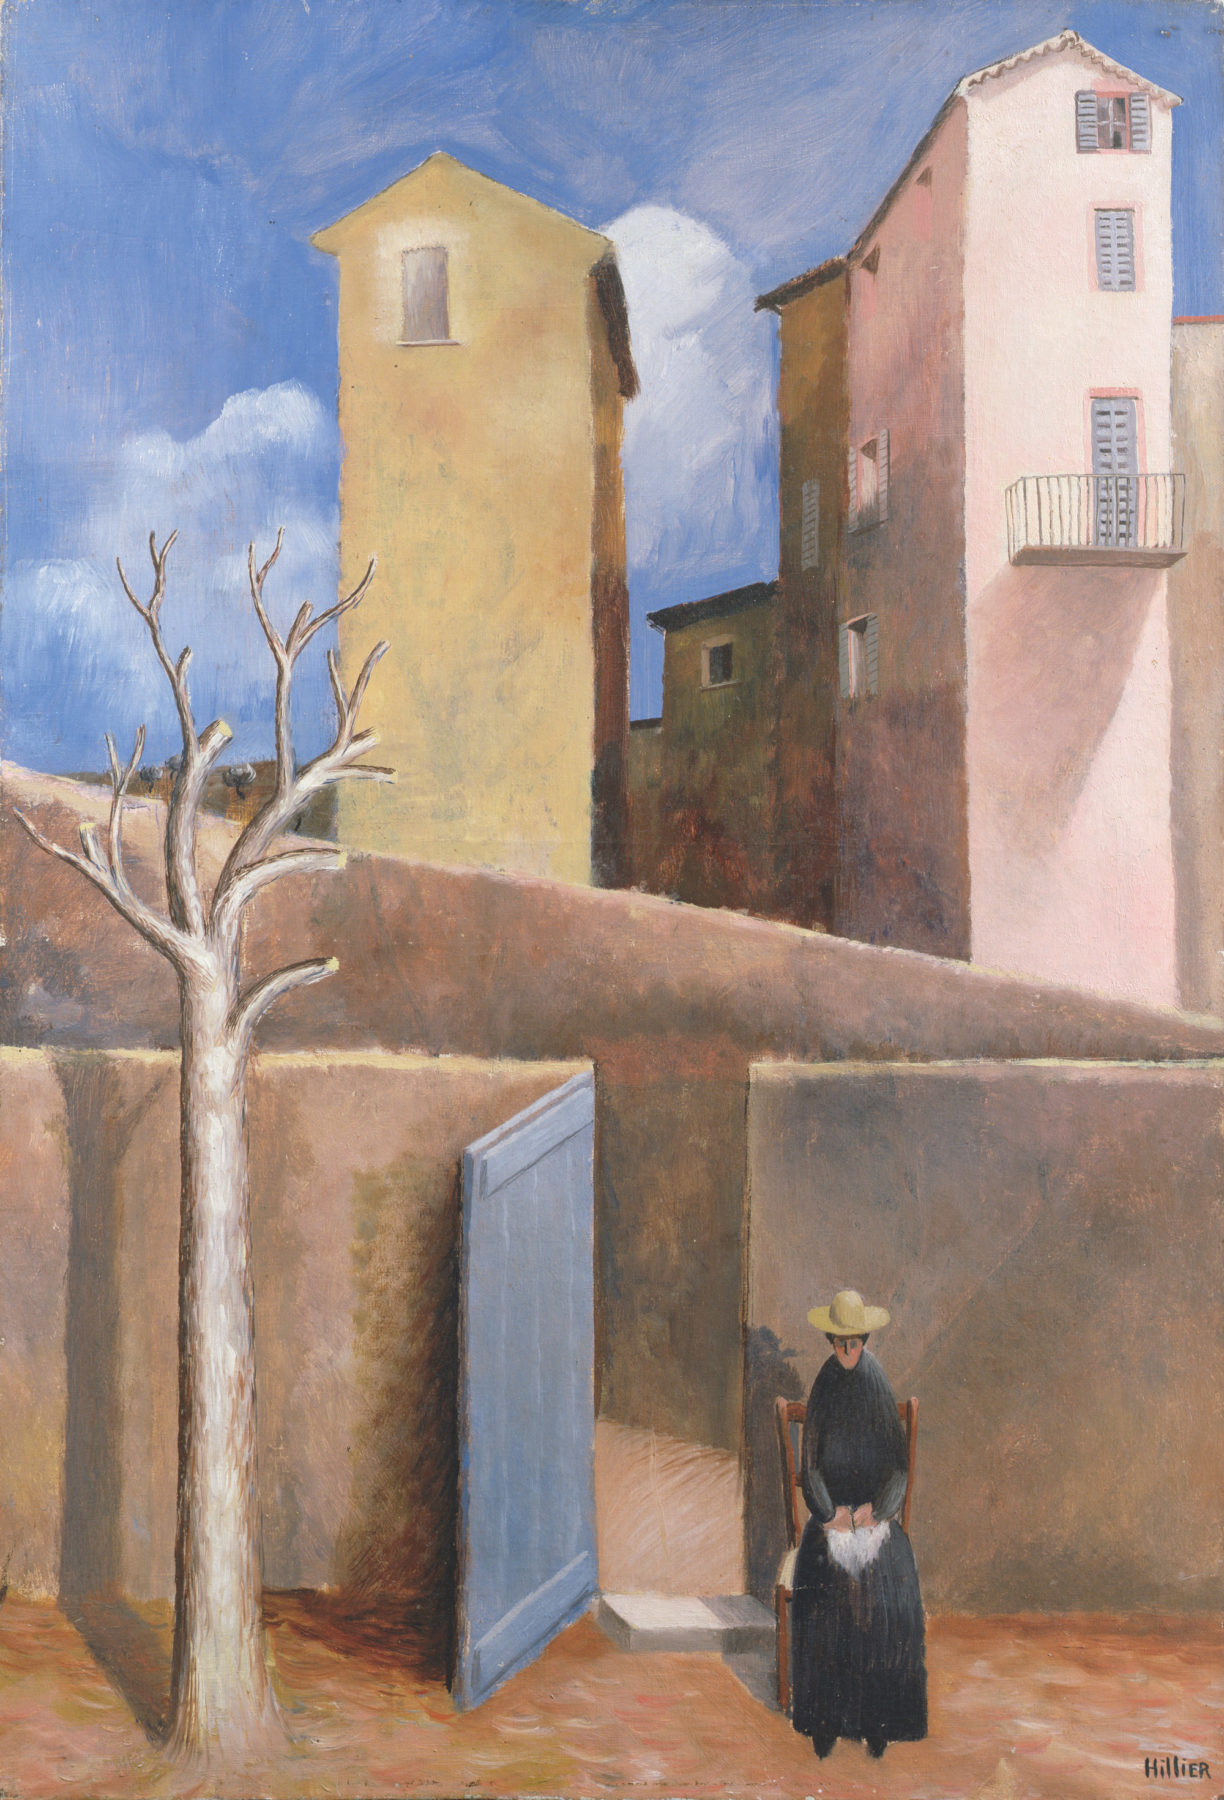 A warm mediterraean scene is dominated by slender high rise buildings painted in pastel pink and burnt yellow. The bottom half of the towers are obscured by a beige wall with an open gate. In the foreground a bare tree rises on the left, and a woman with a hat dressed in black sits to the right.